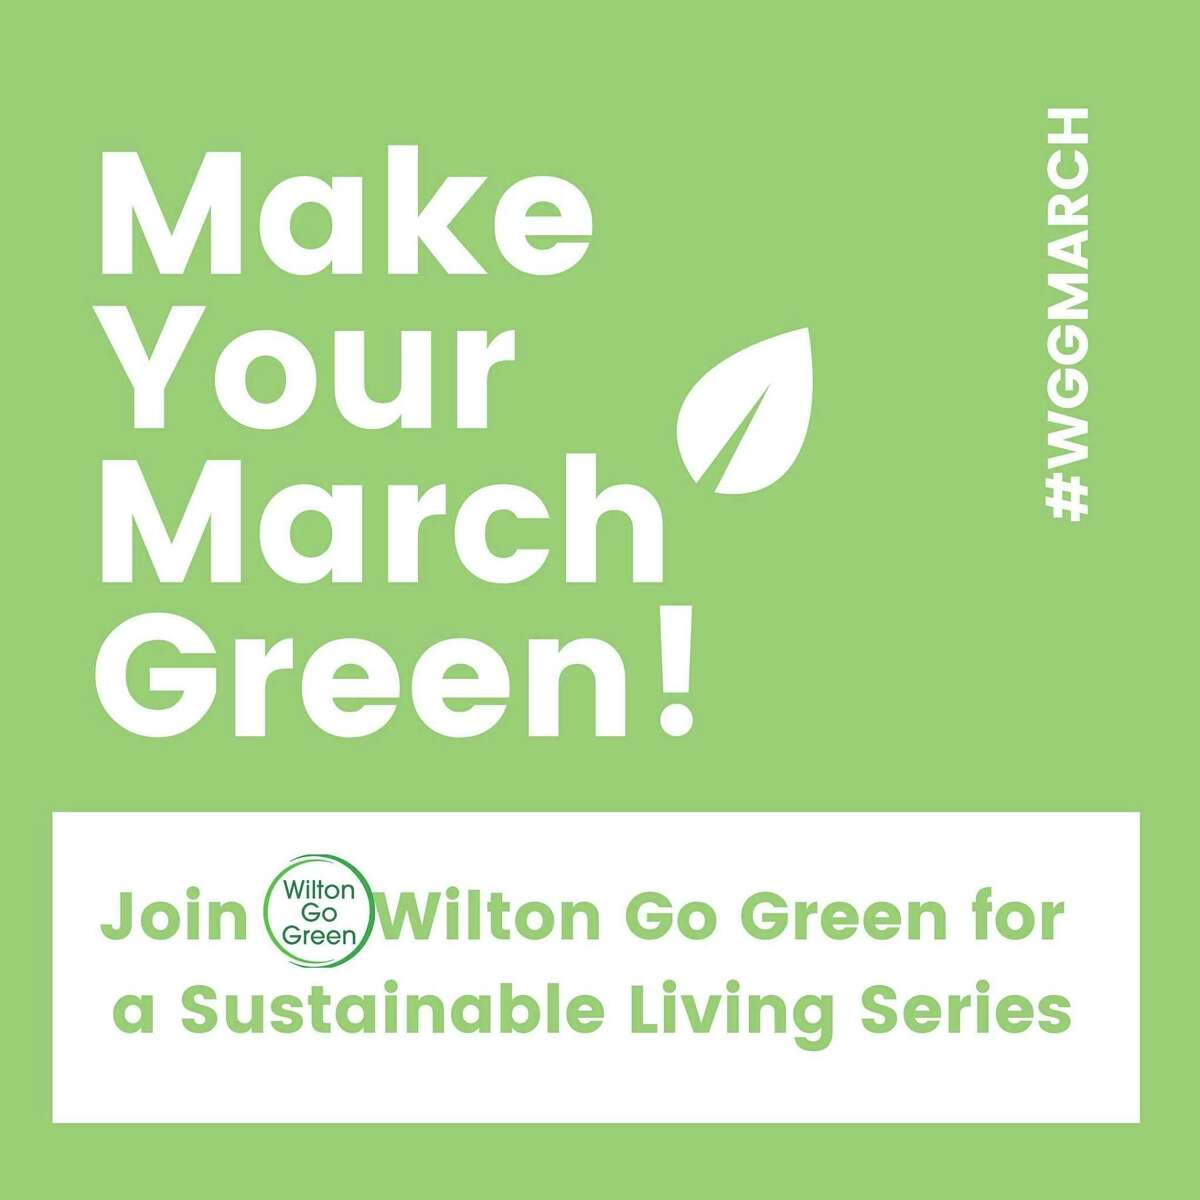 """Wilton Go Green is hosting a month of programming to promote small sustainable changes in the community entitled """"Make Your March Green."""""""